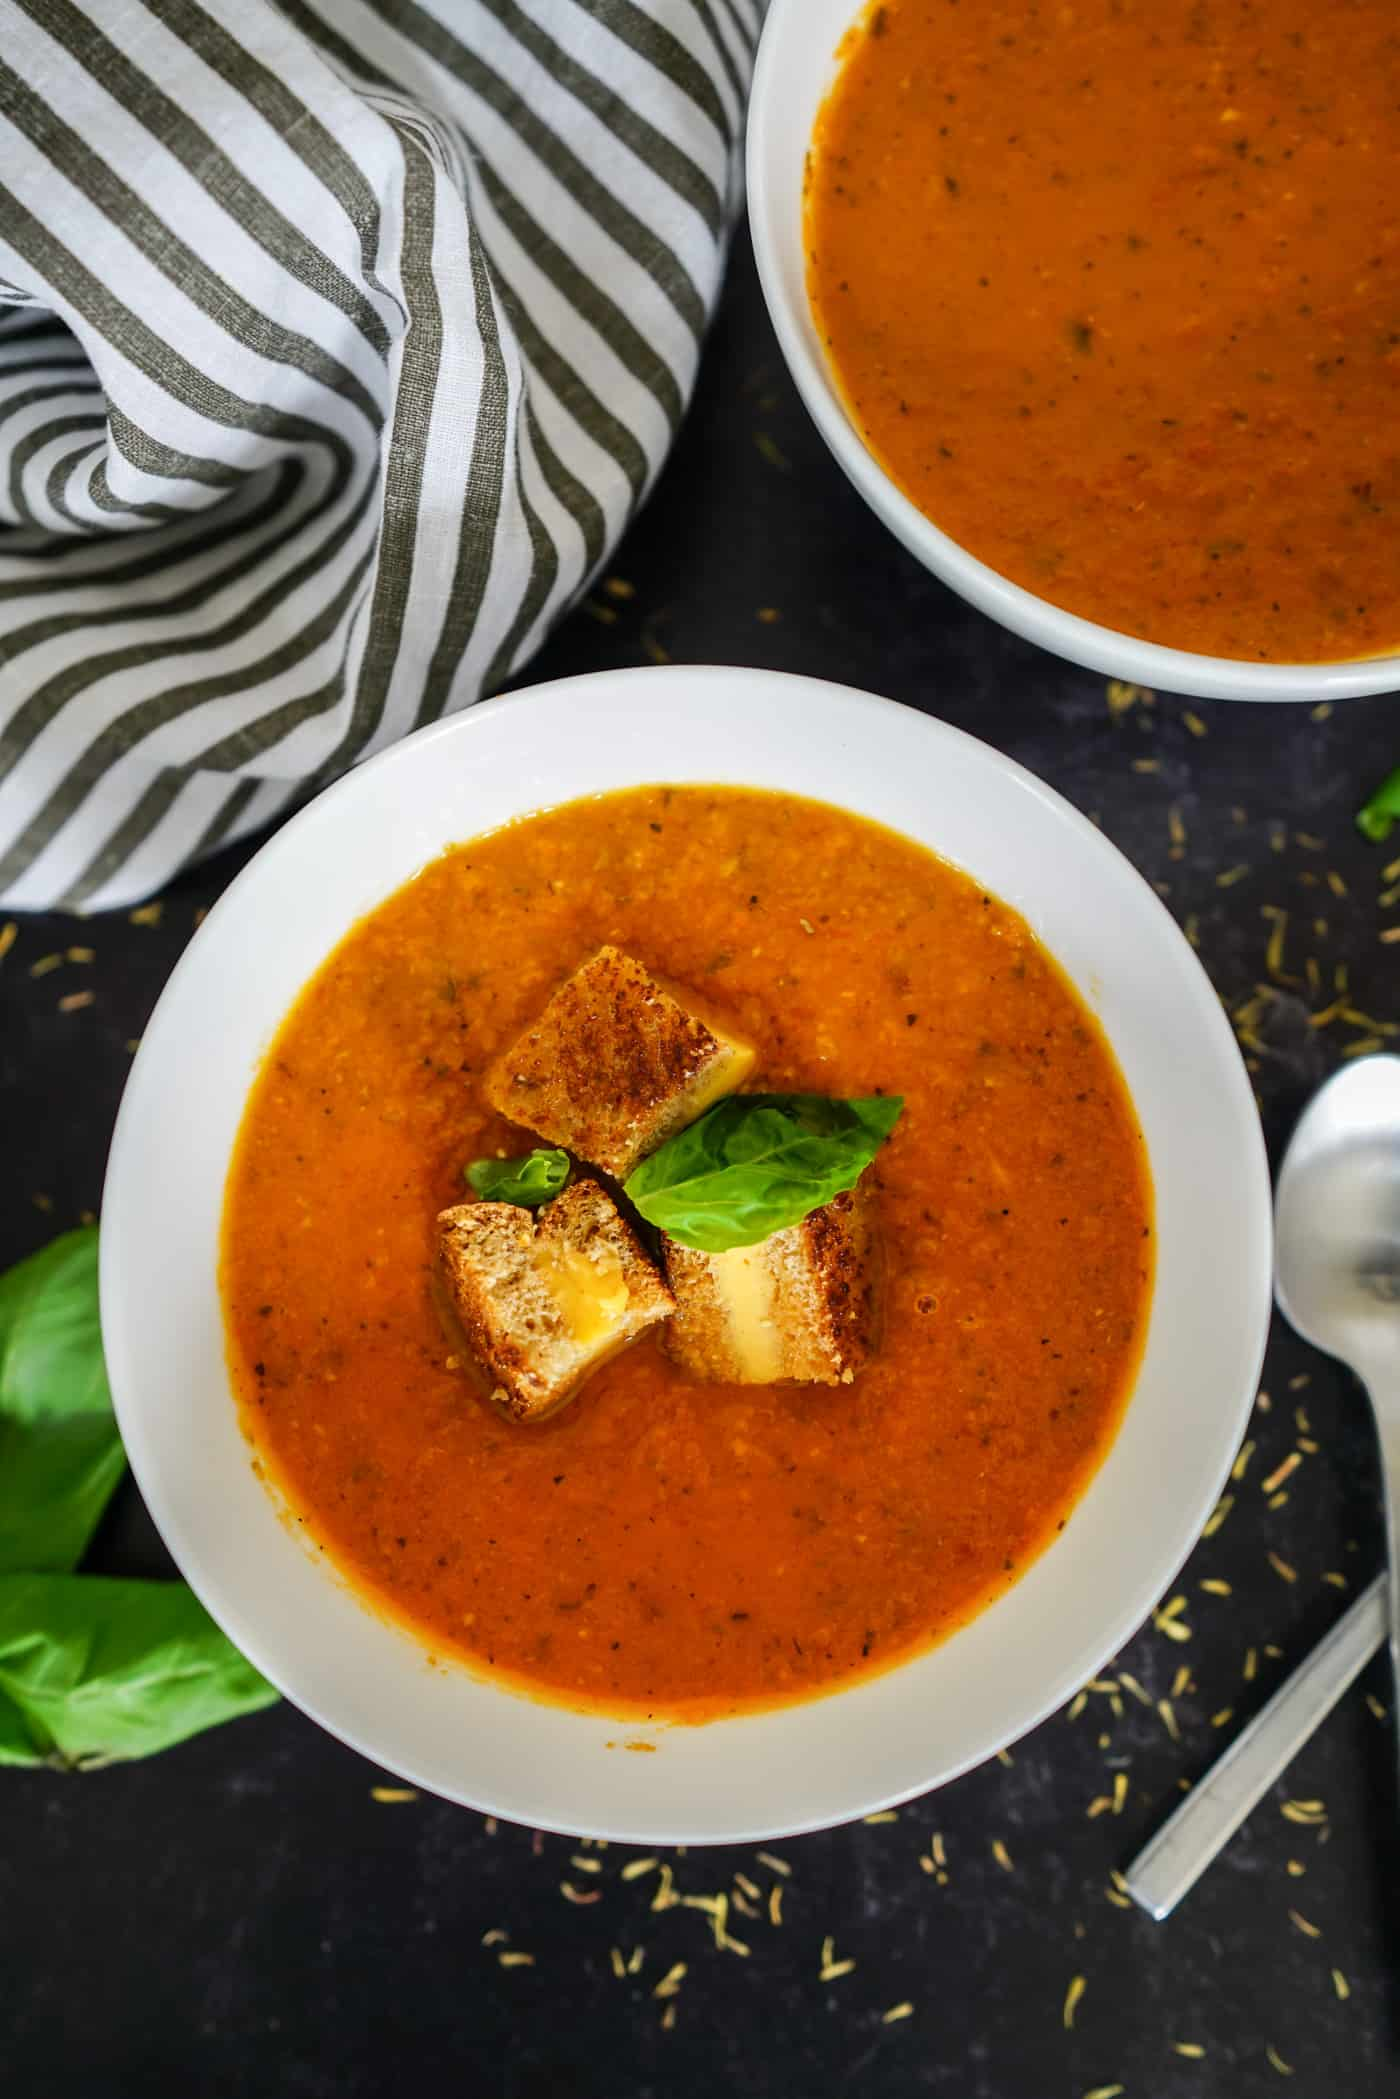 A Lily Love Affair shares a recipe for Instant Pot Tomato Basil Soup topped with grilled cheese crutons